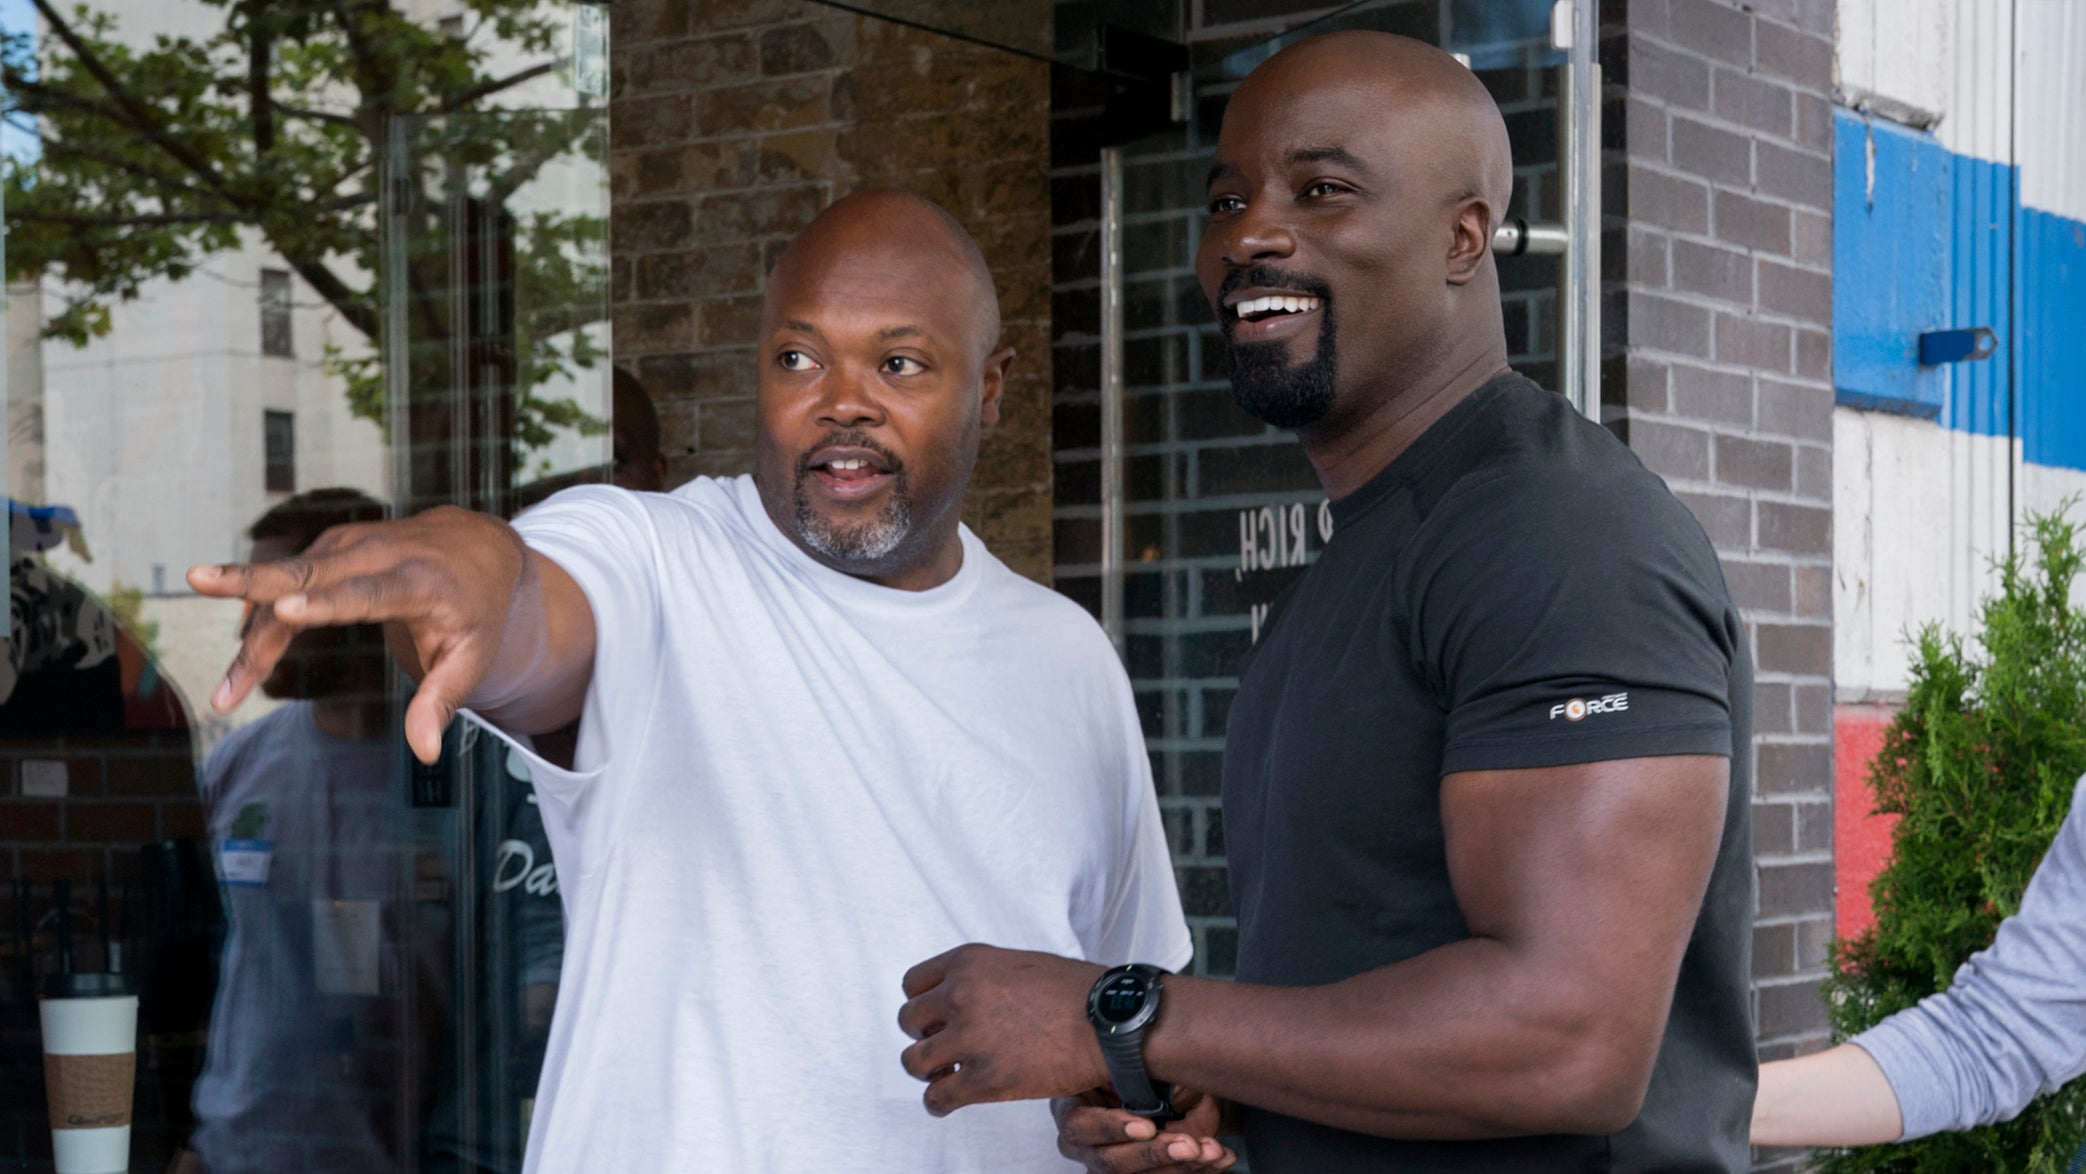 Luke Cage's Showrunner Says His Harshest Critics Helped Him Make The Second Season Bulletproof